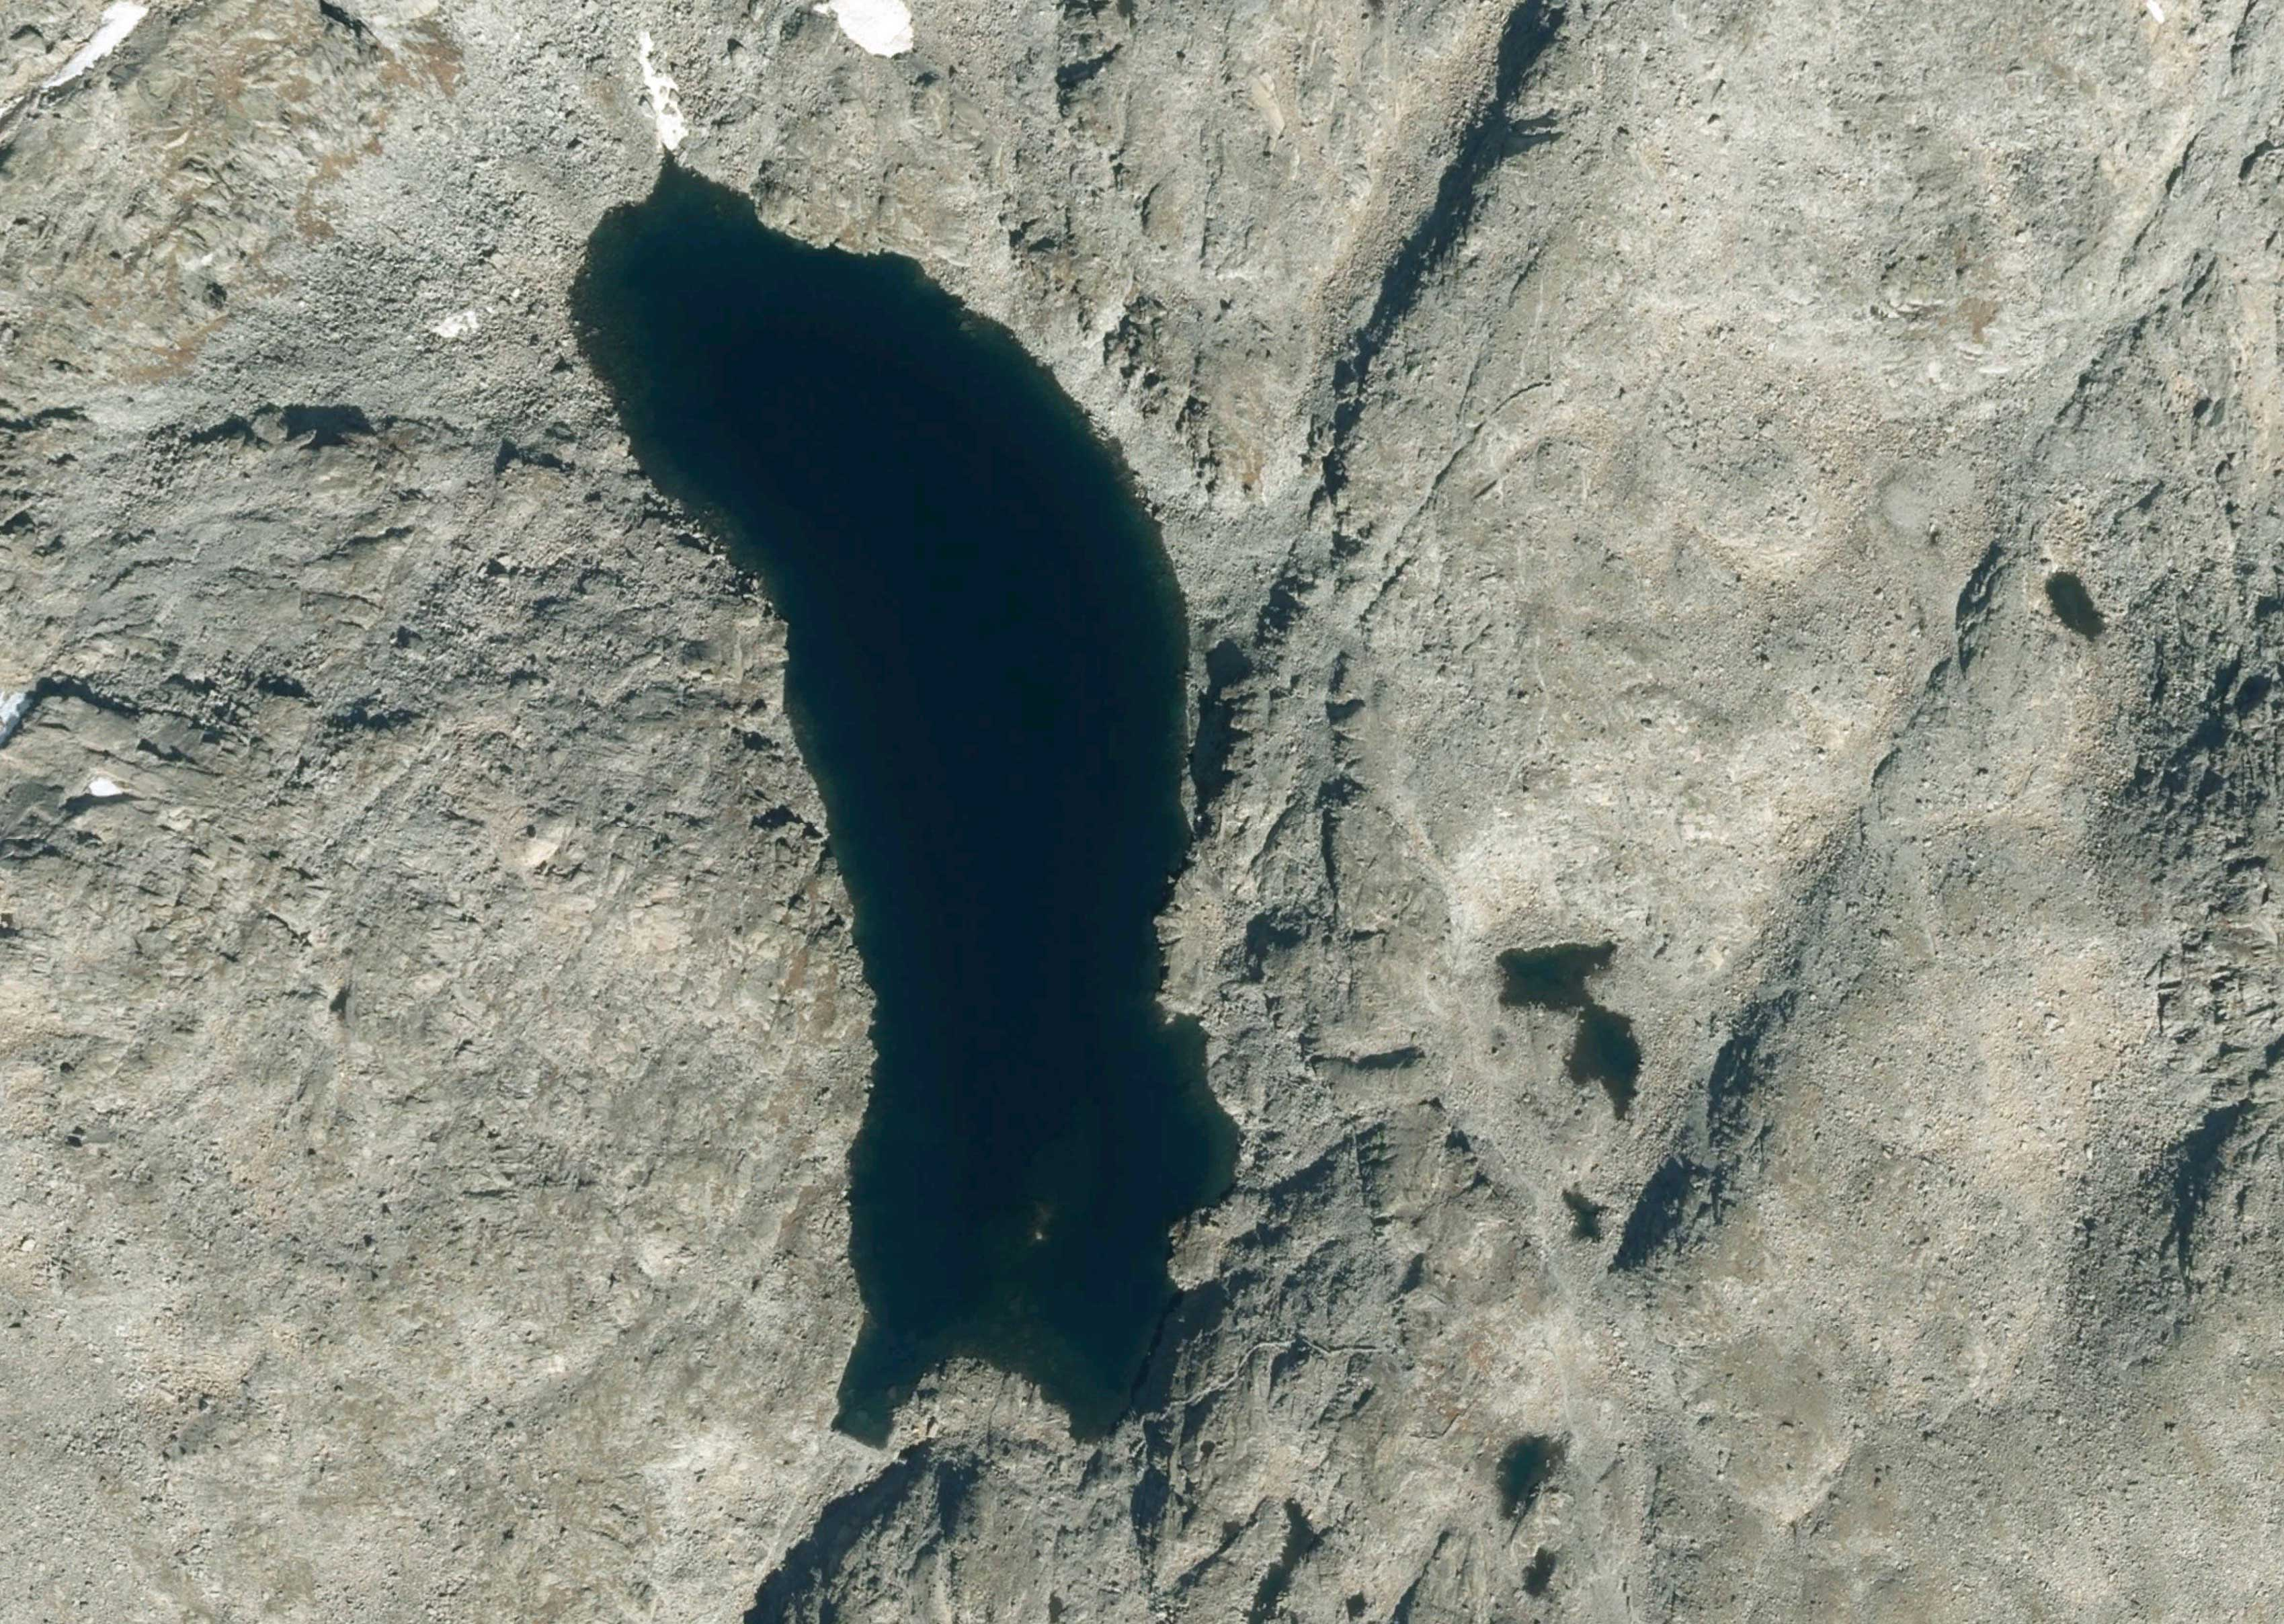 Lago Scuro dal satellite